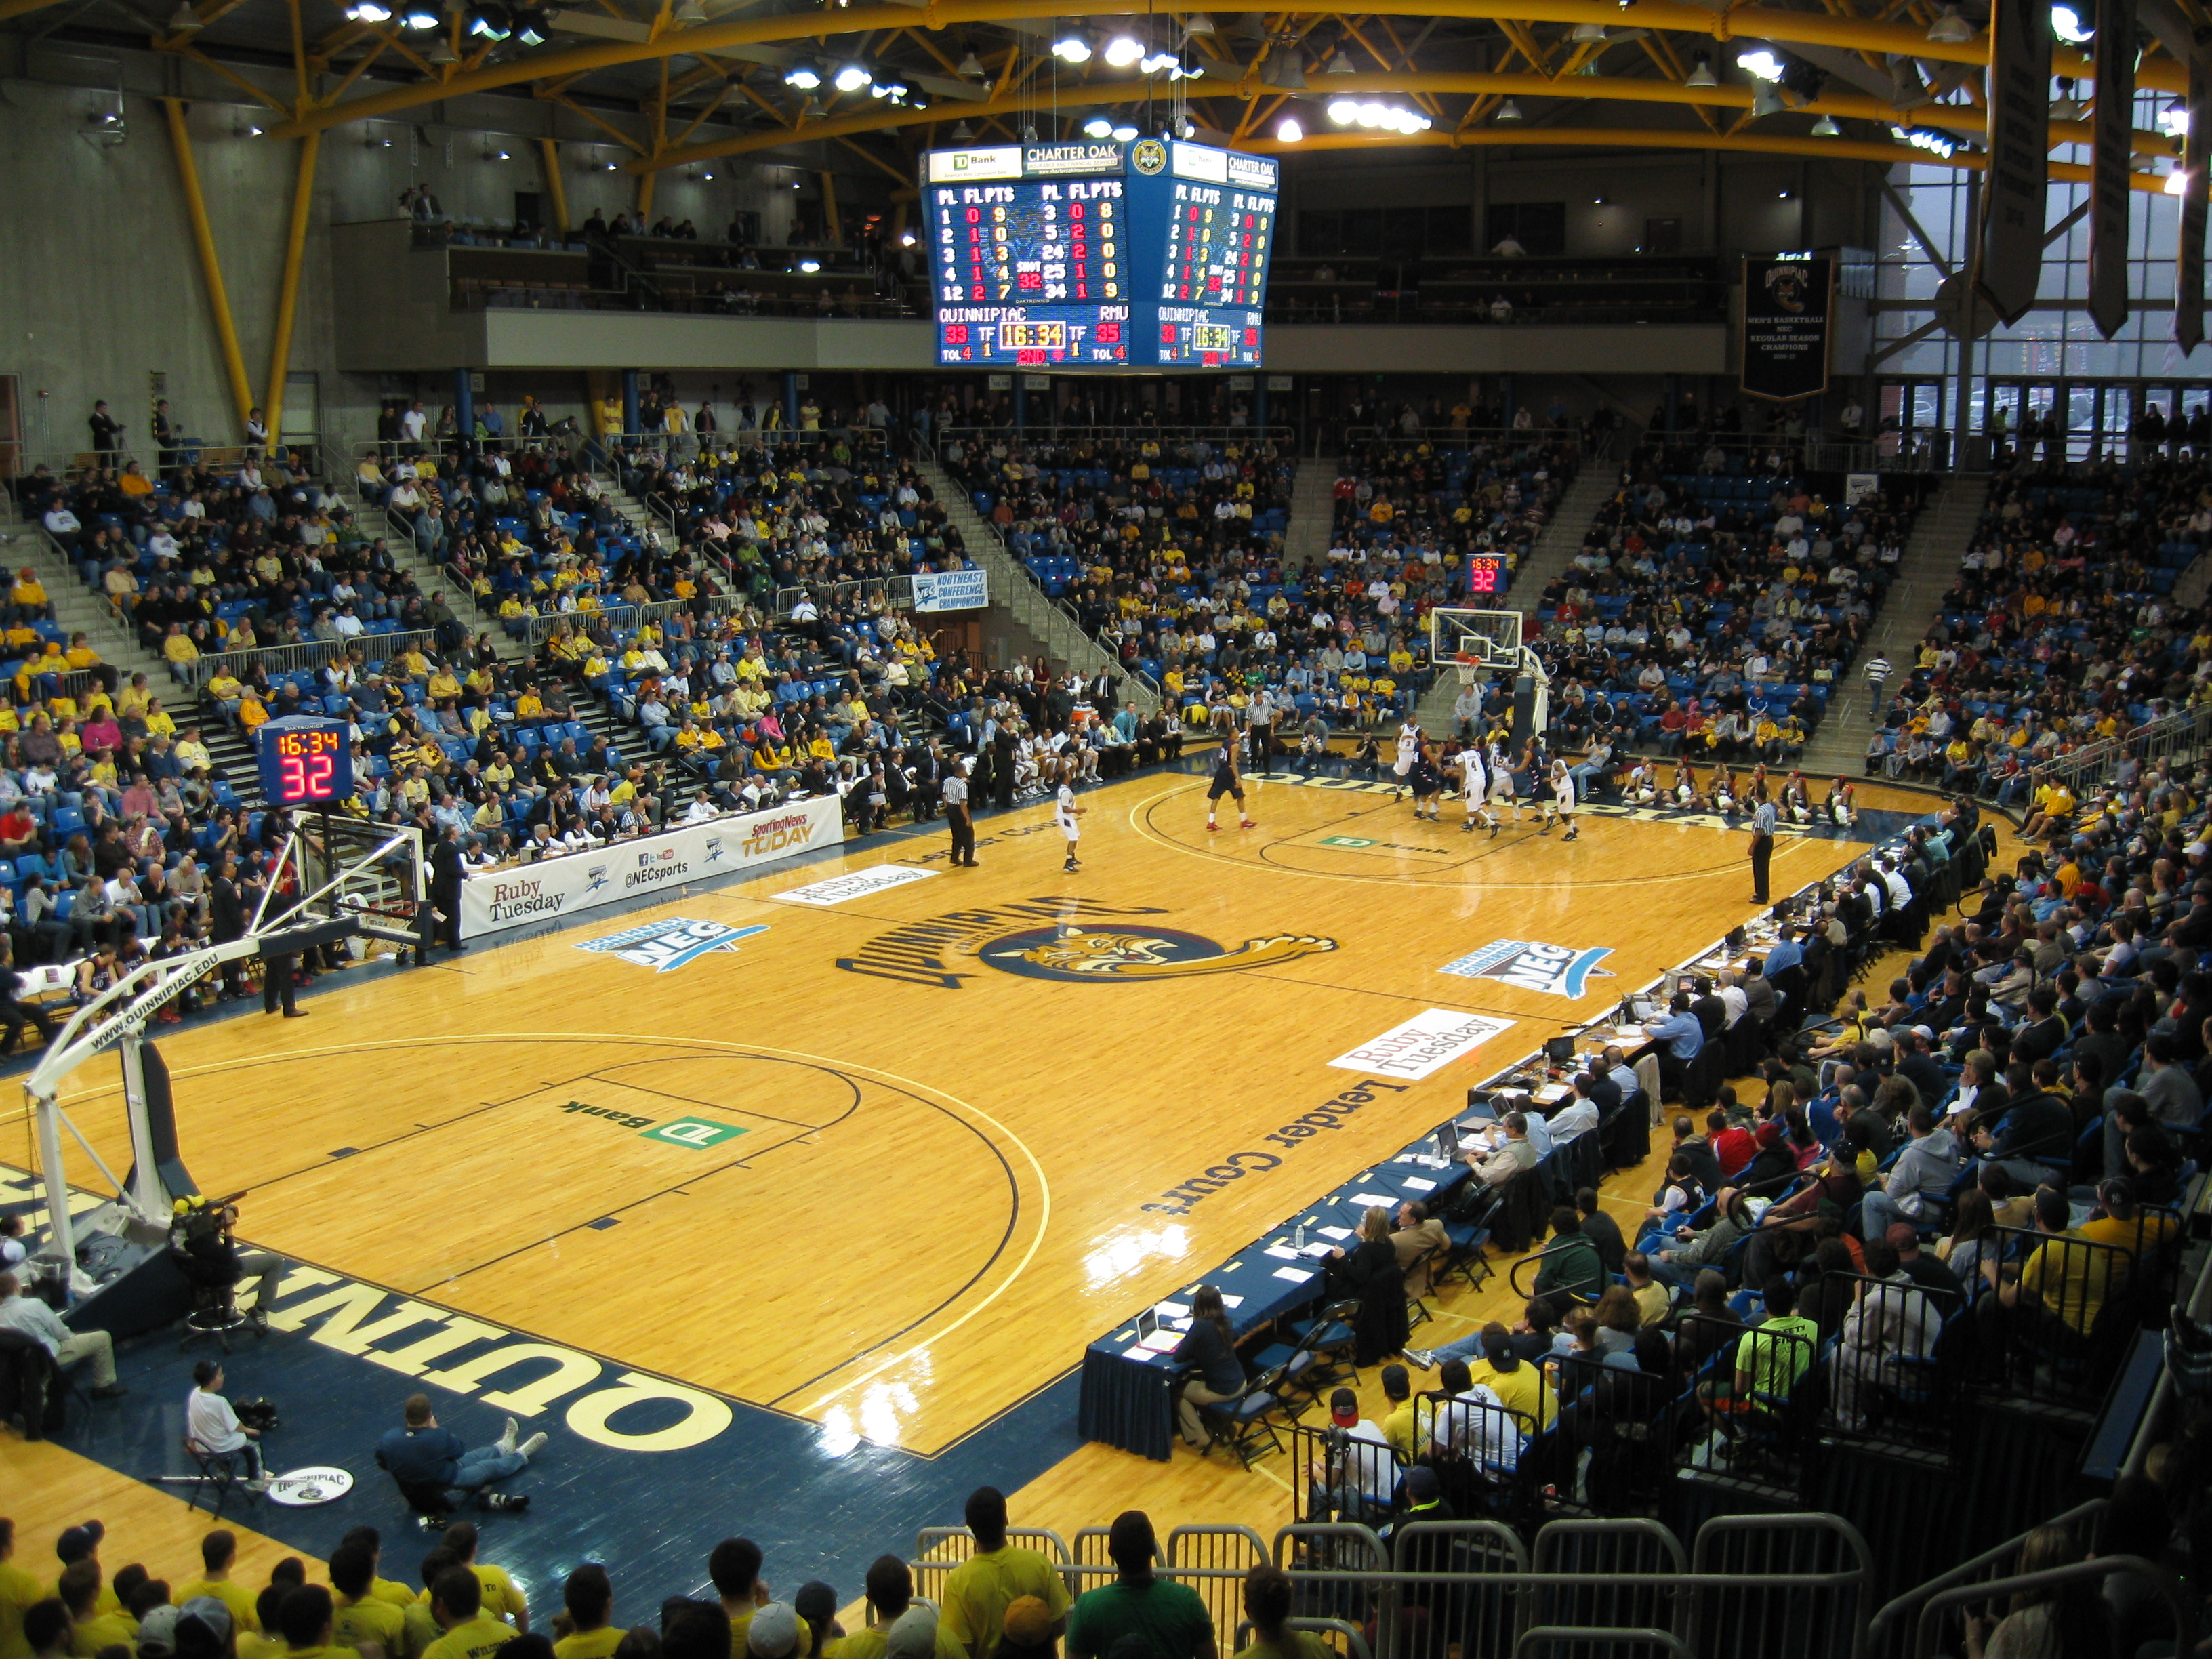 Quinnipiac Basketball 171 Stadium And Arena Visits